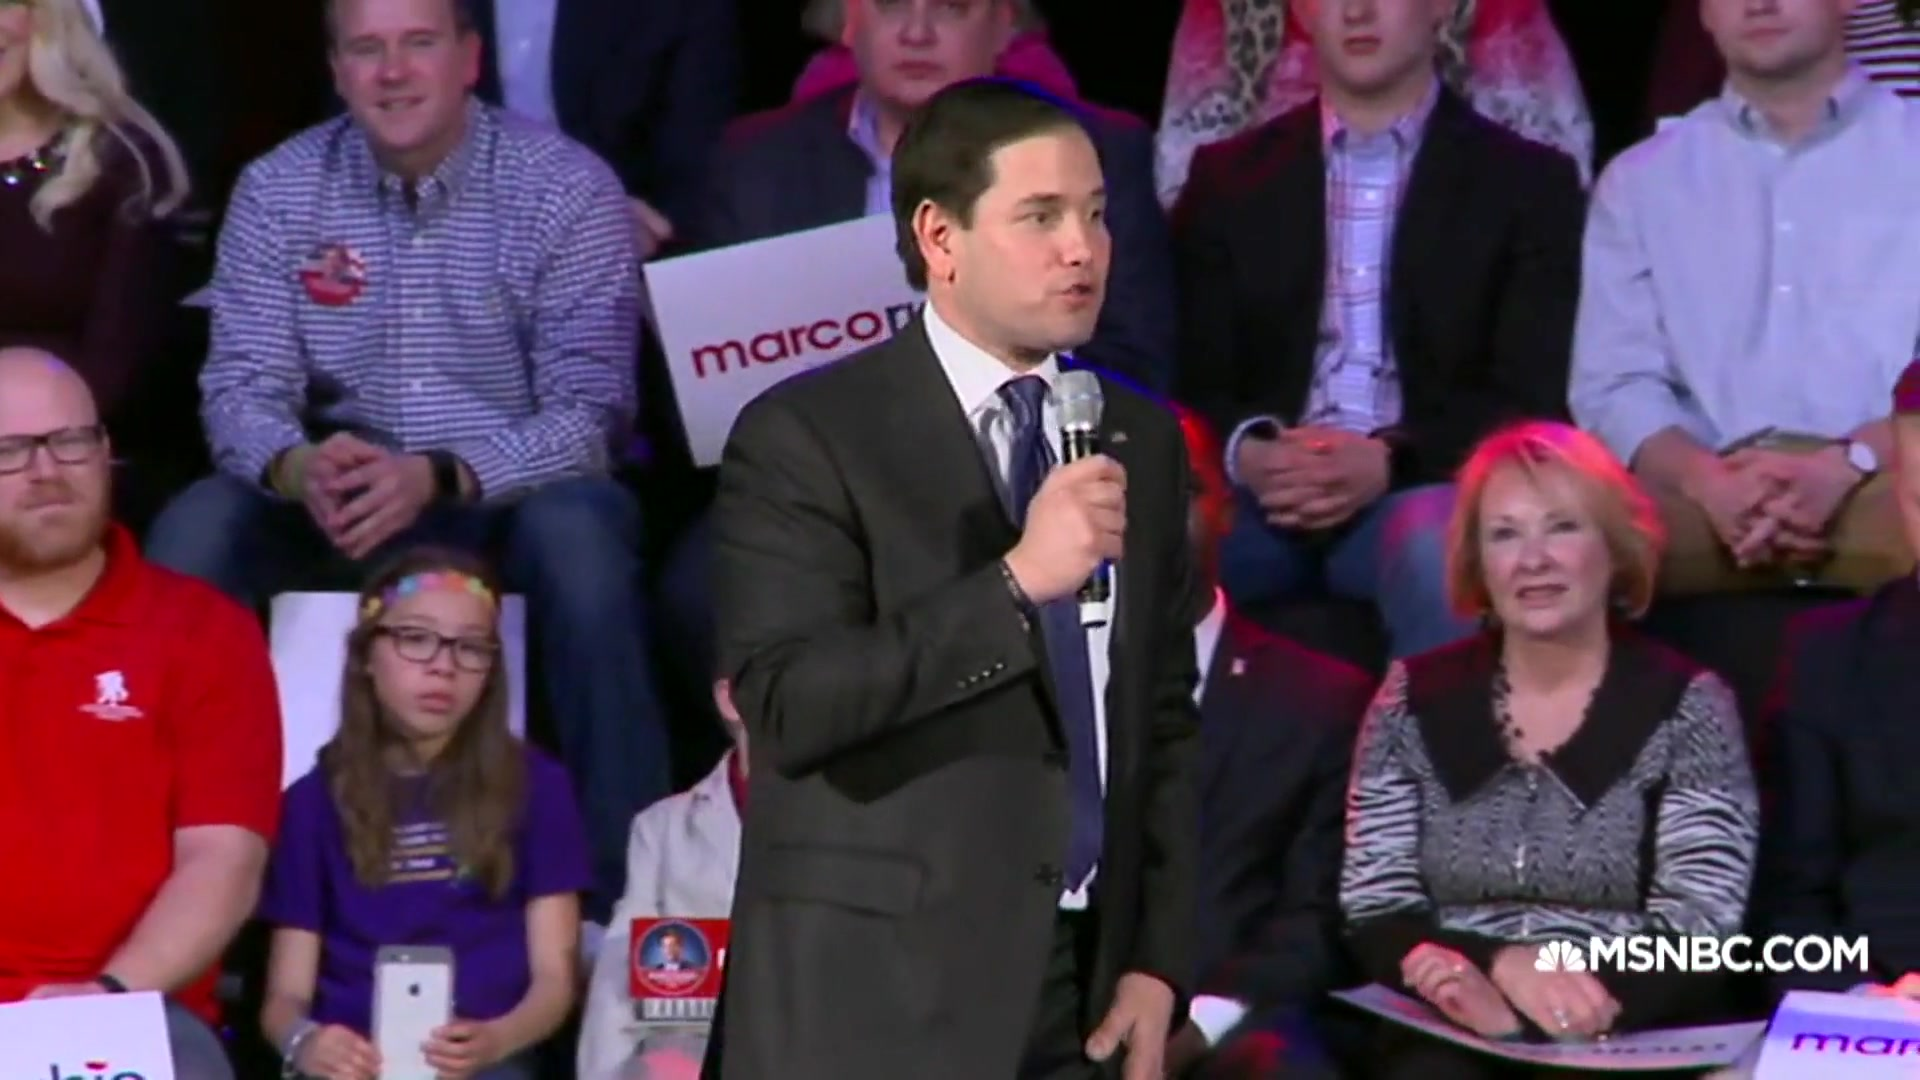 Marco Rubio Reads Trump's Mean Tweets at Rally